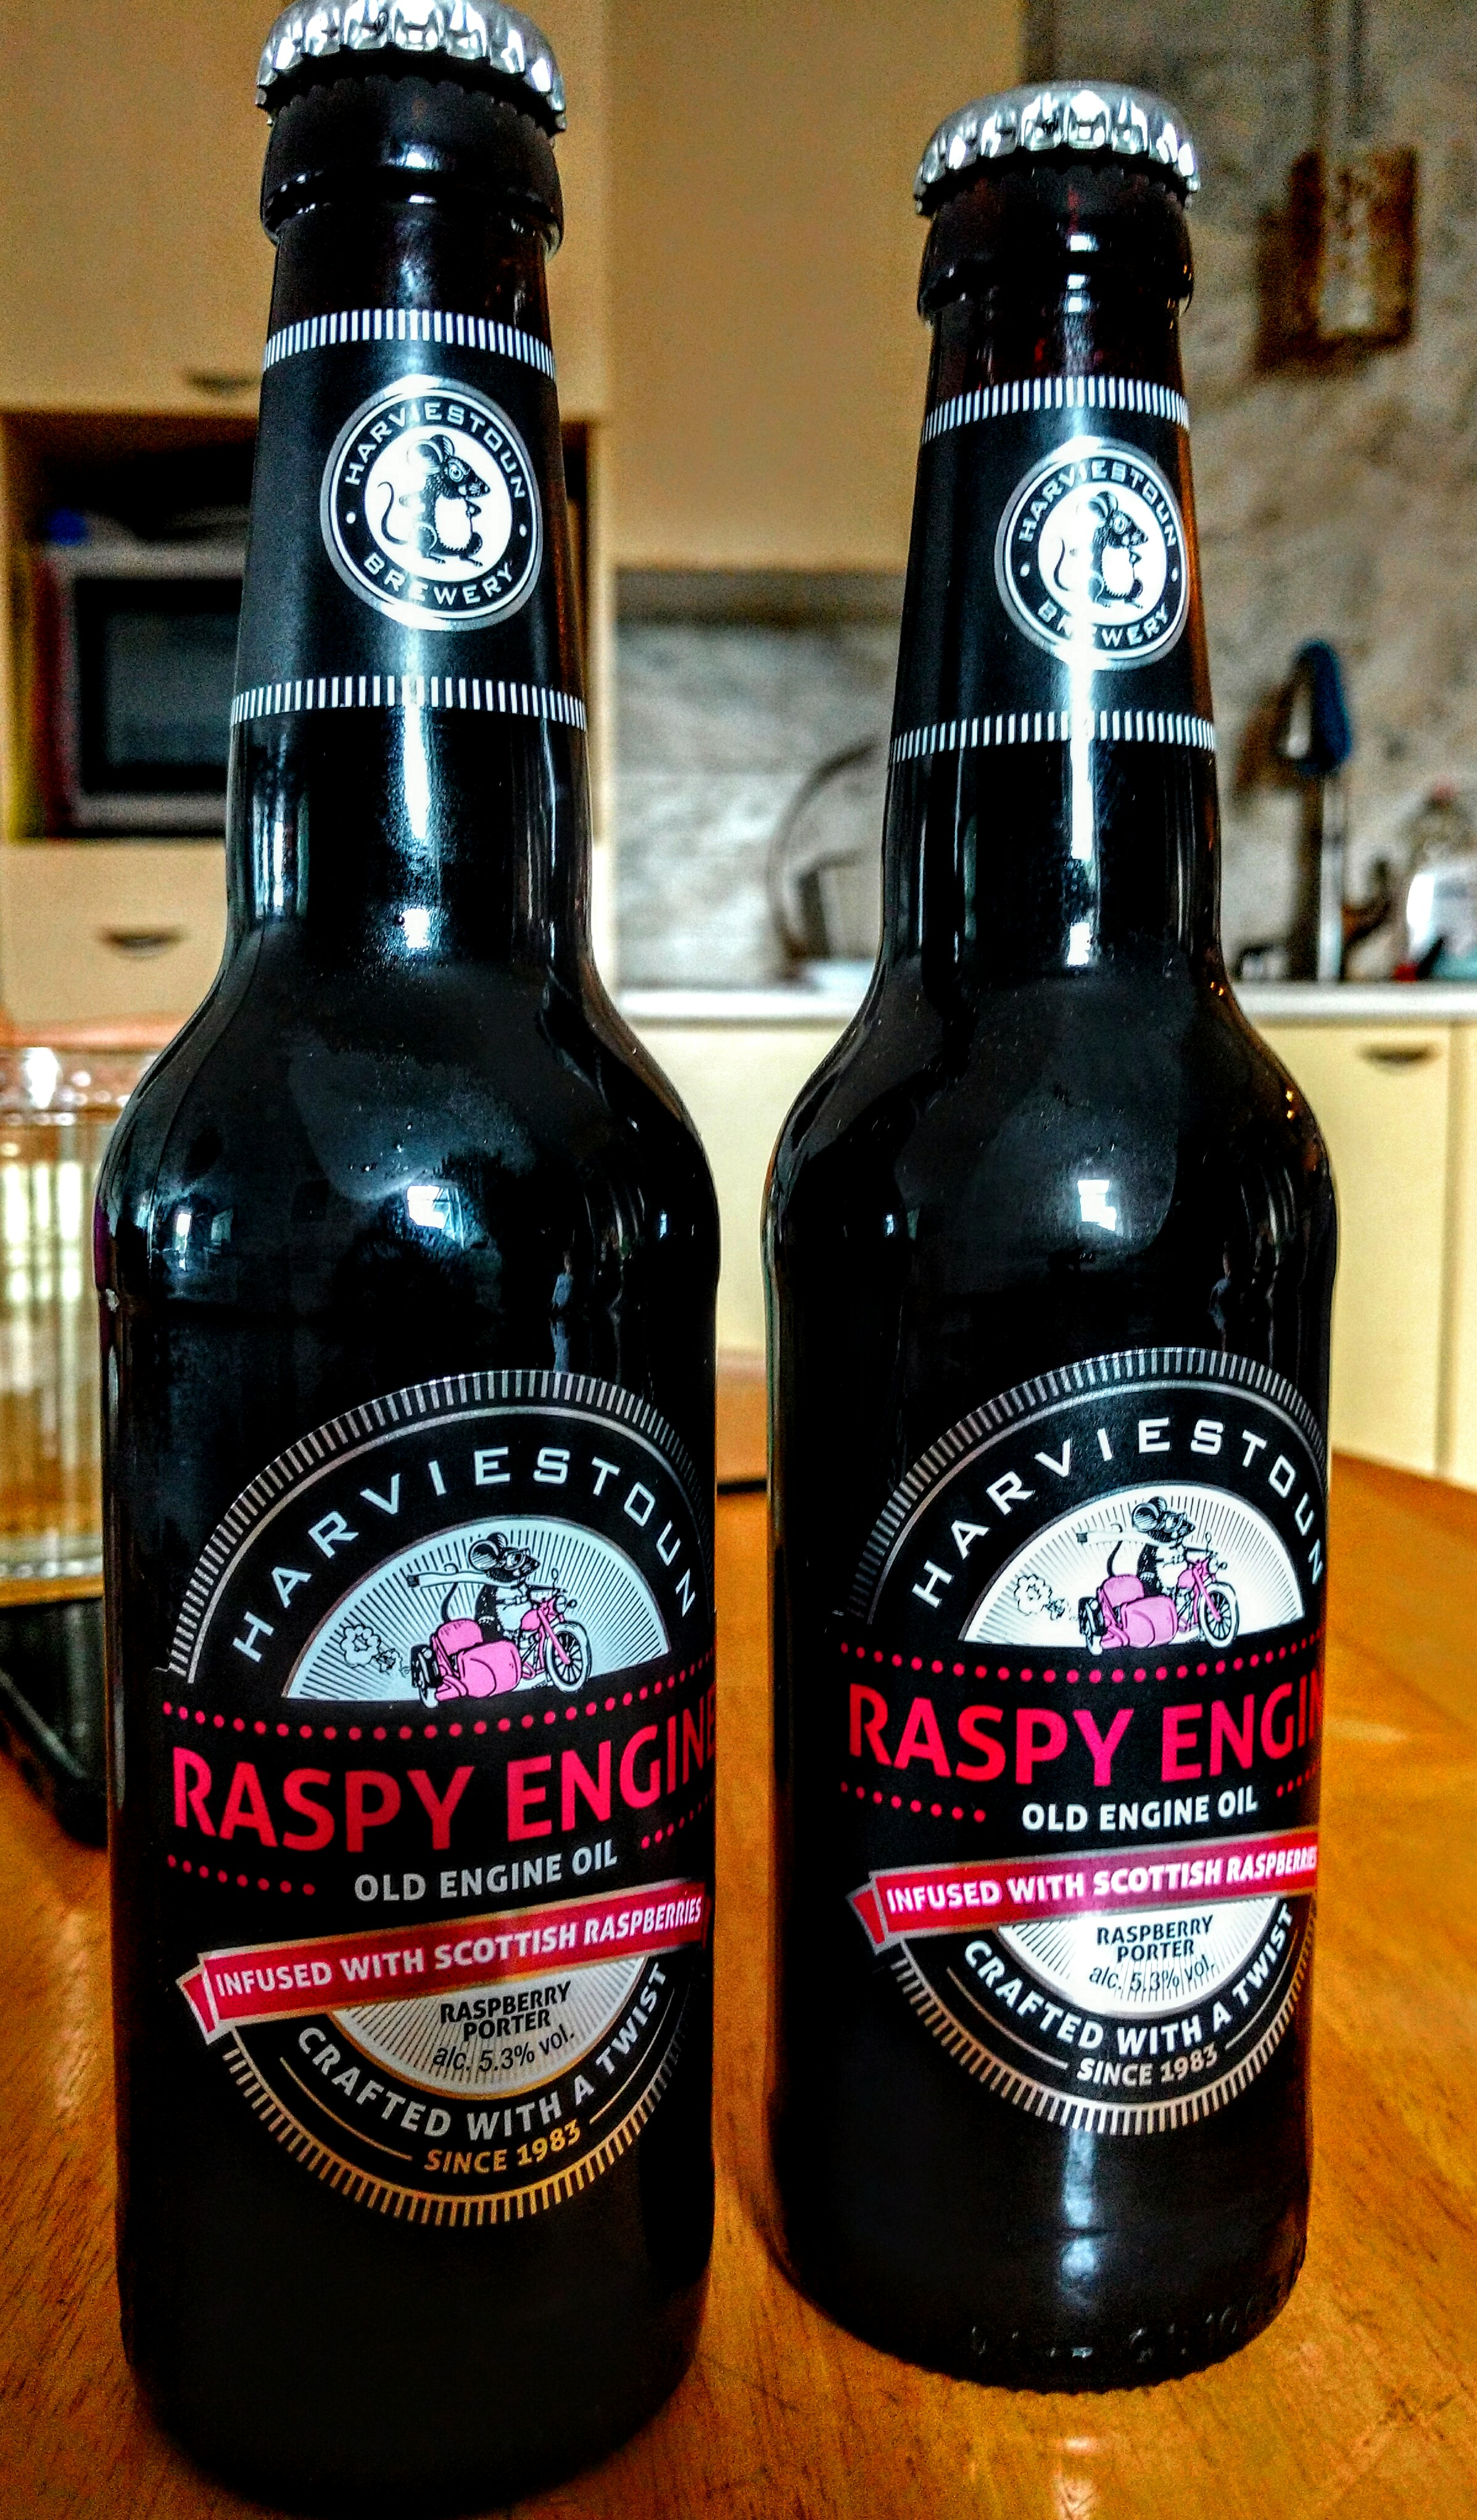 Harviestoun Raspy Engine Old Engine Oil Raspberry Porter with Dan